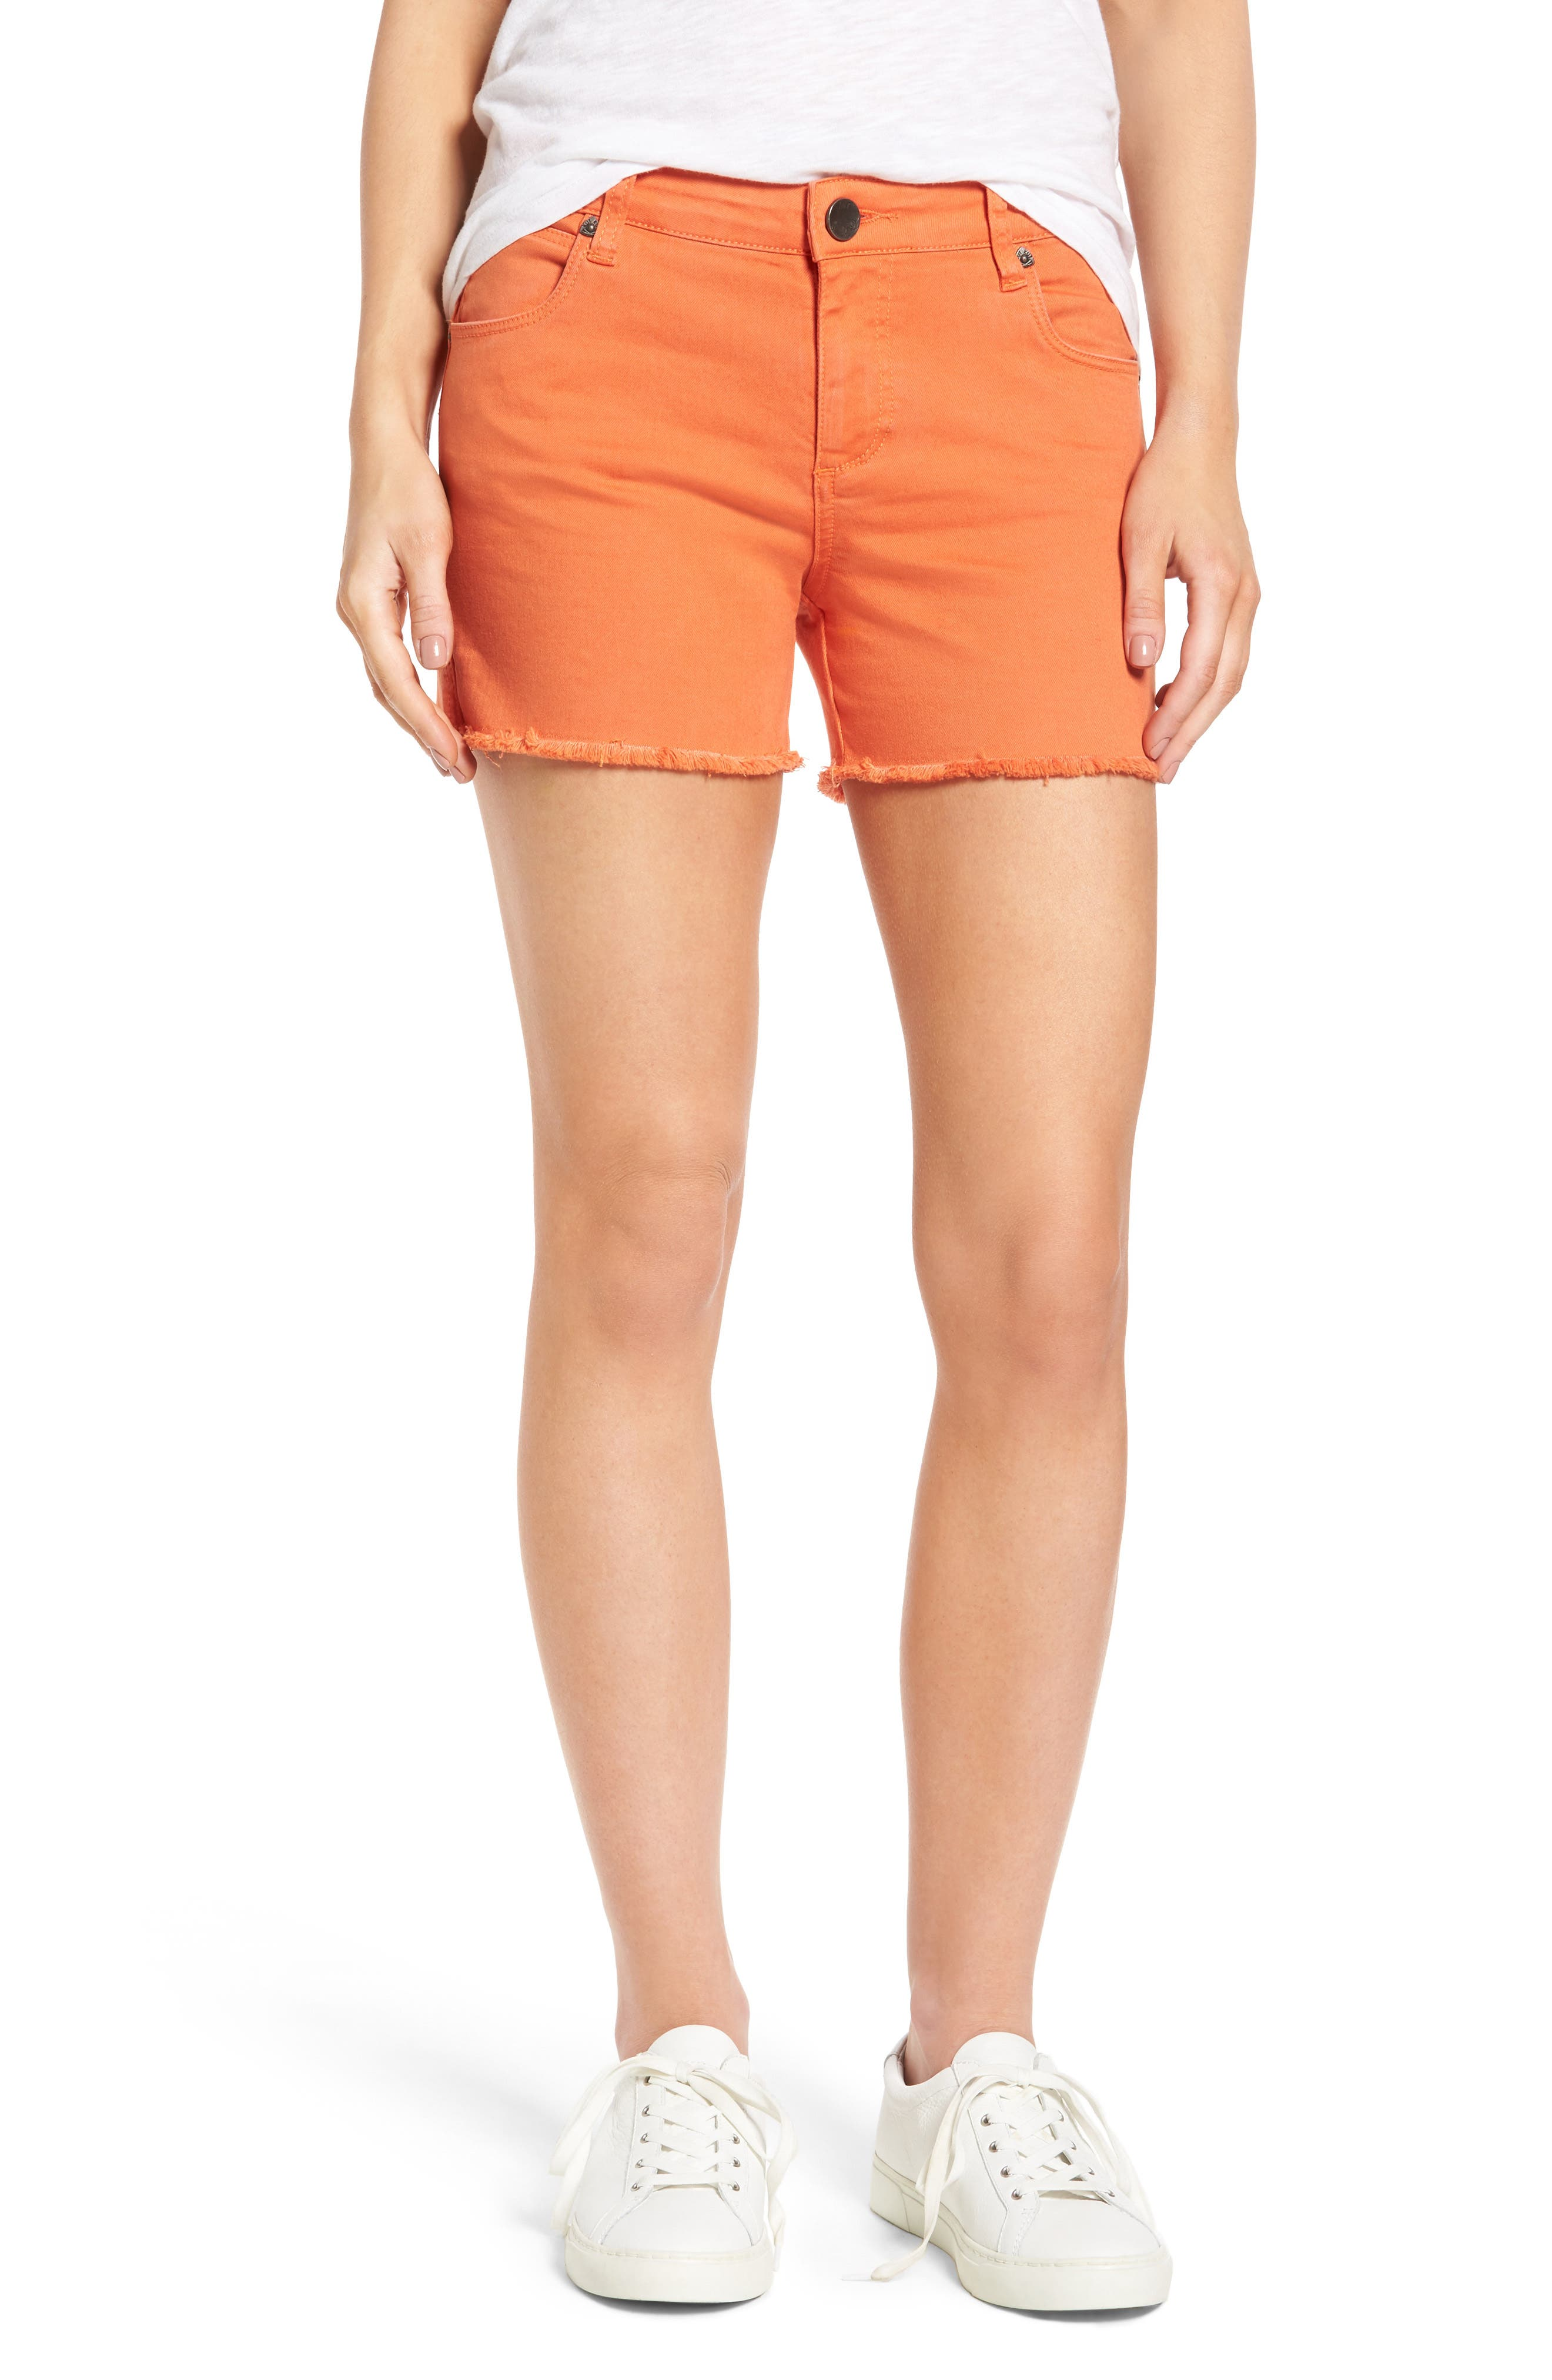 KUT from the Kloth Gidget Fray Hem Orange Denim Shorts